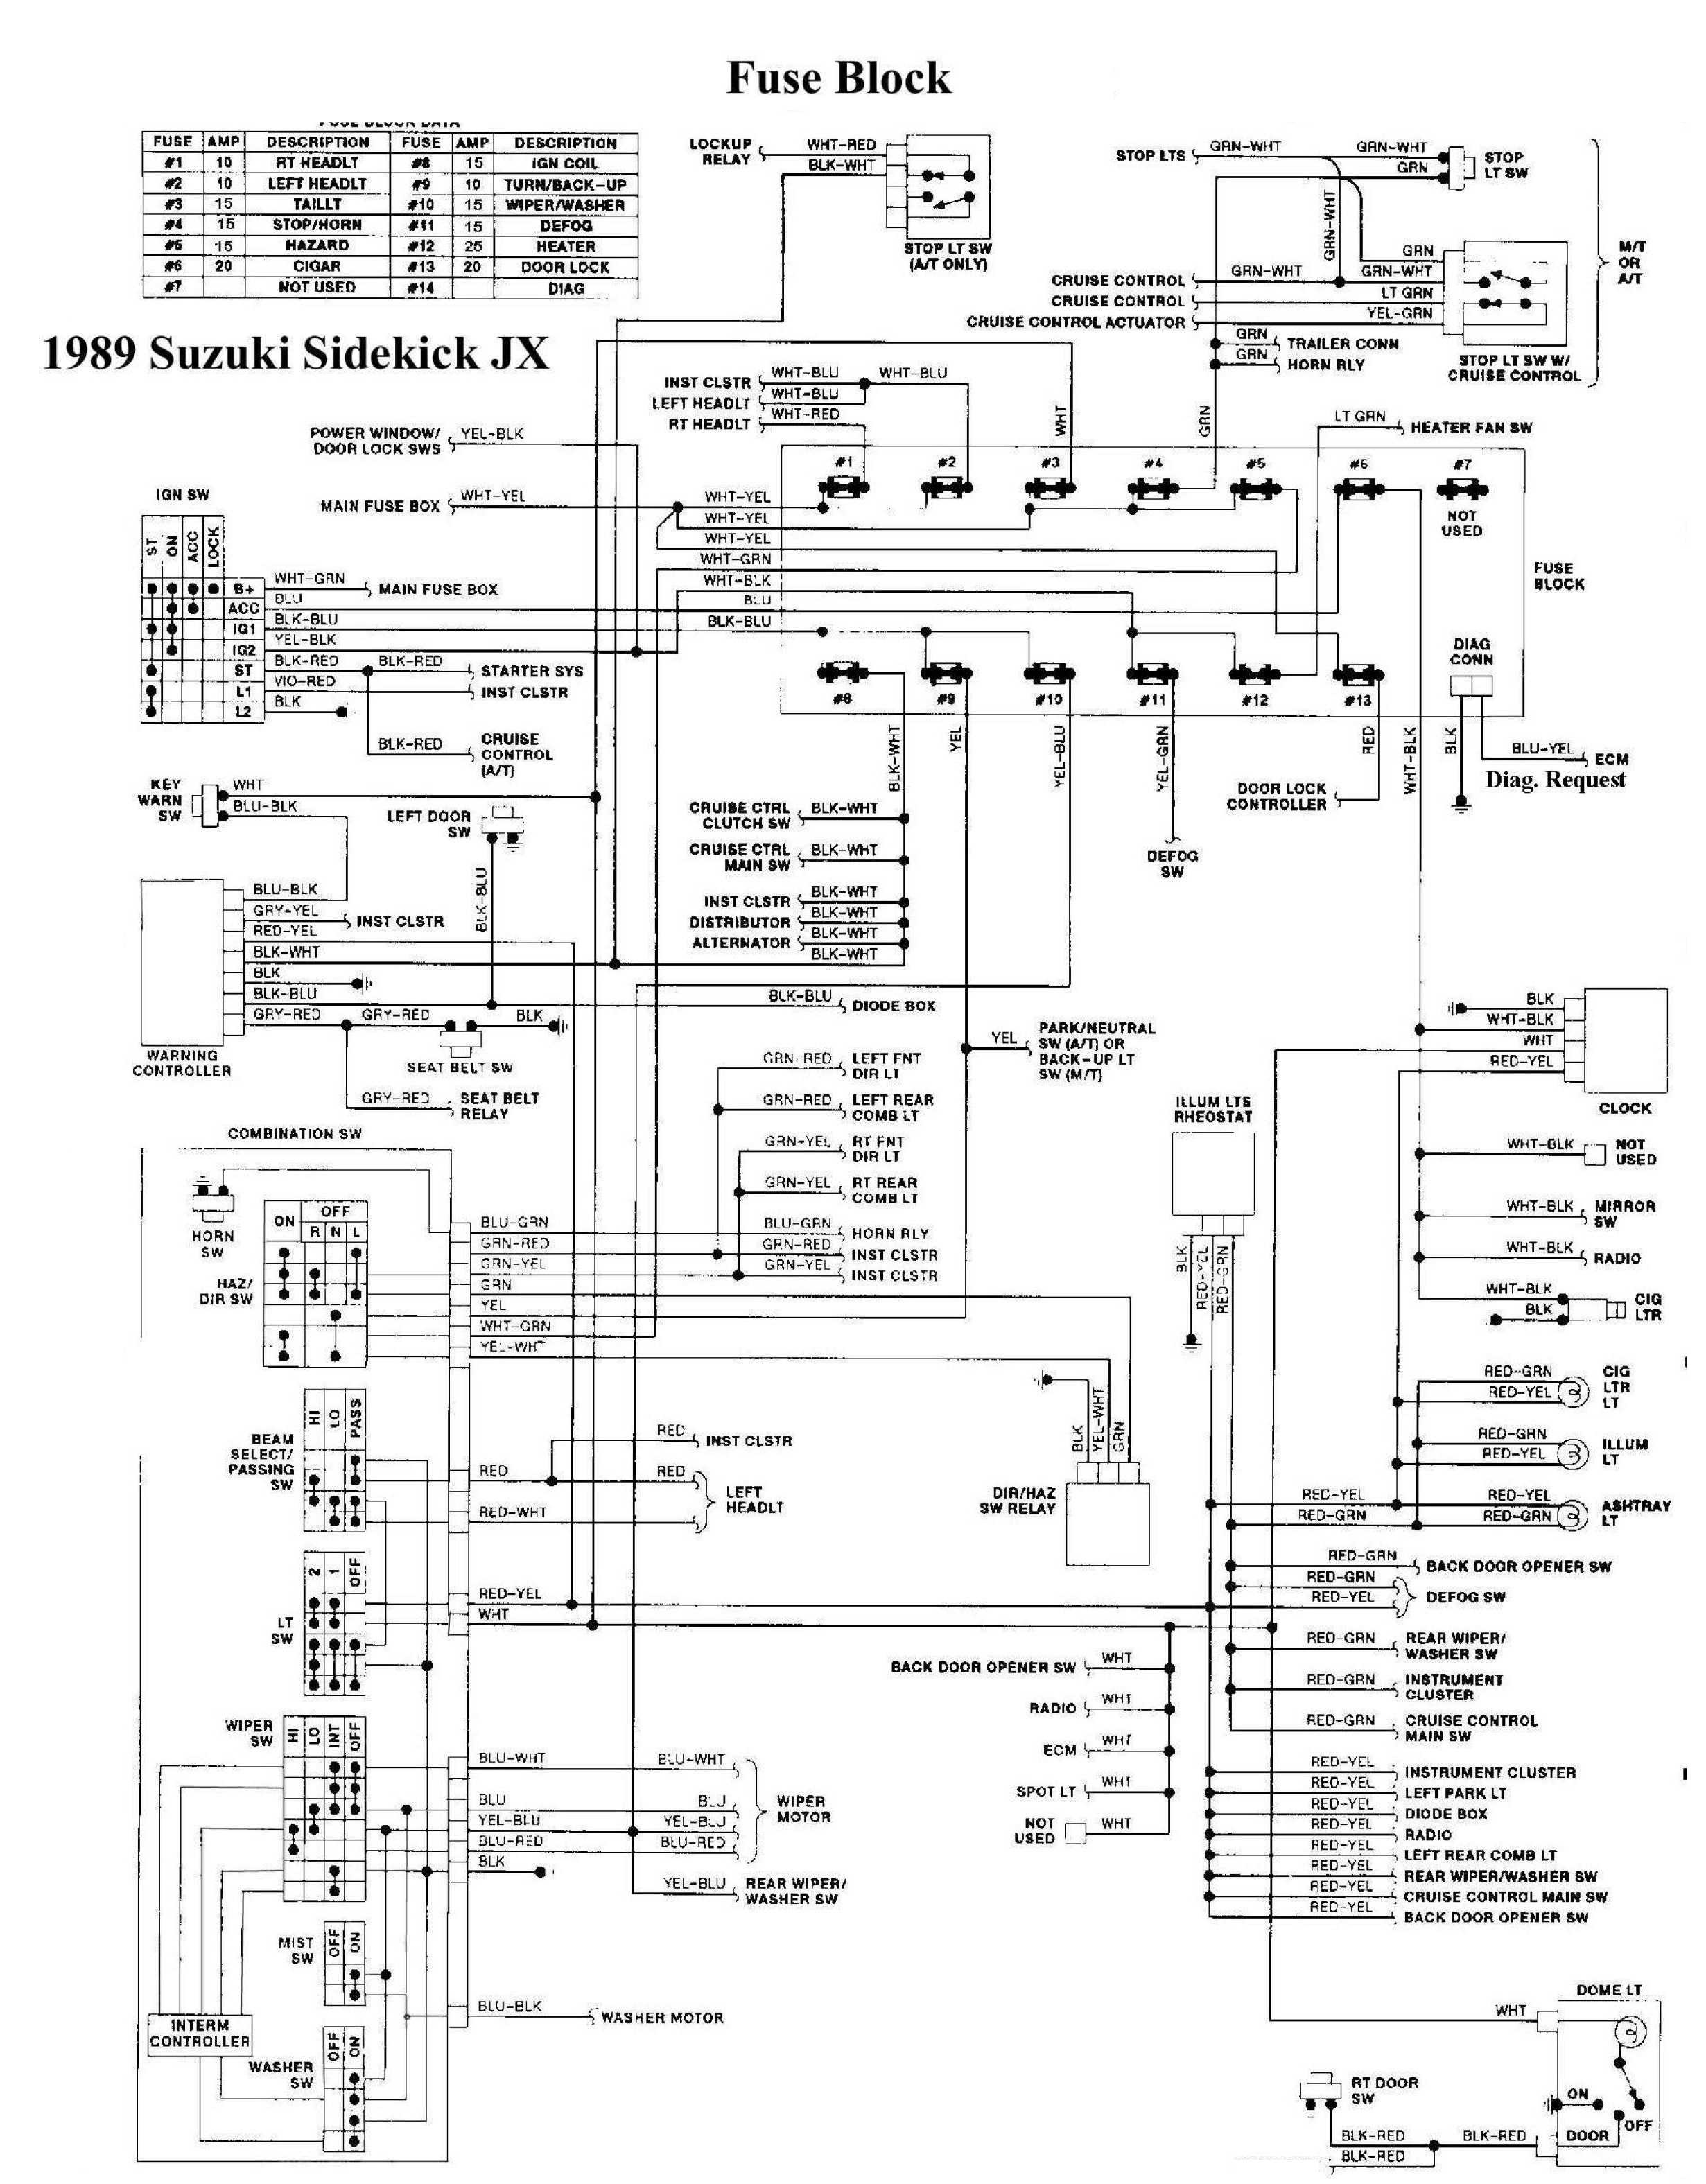 Suzuki Engine Diagrams Wiring Library 2004 Eiger Diagram Door Schematic Car Explained U2022 Rh Ethermag Co 2000 Grand Vitara